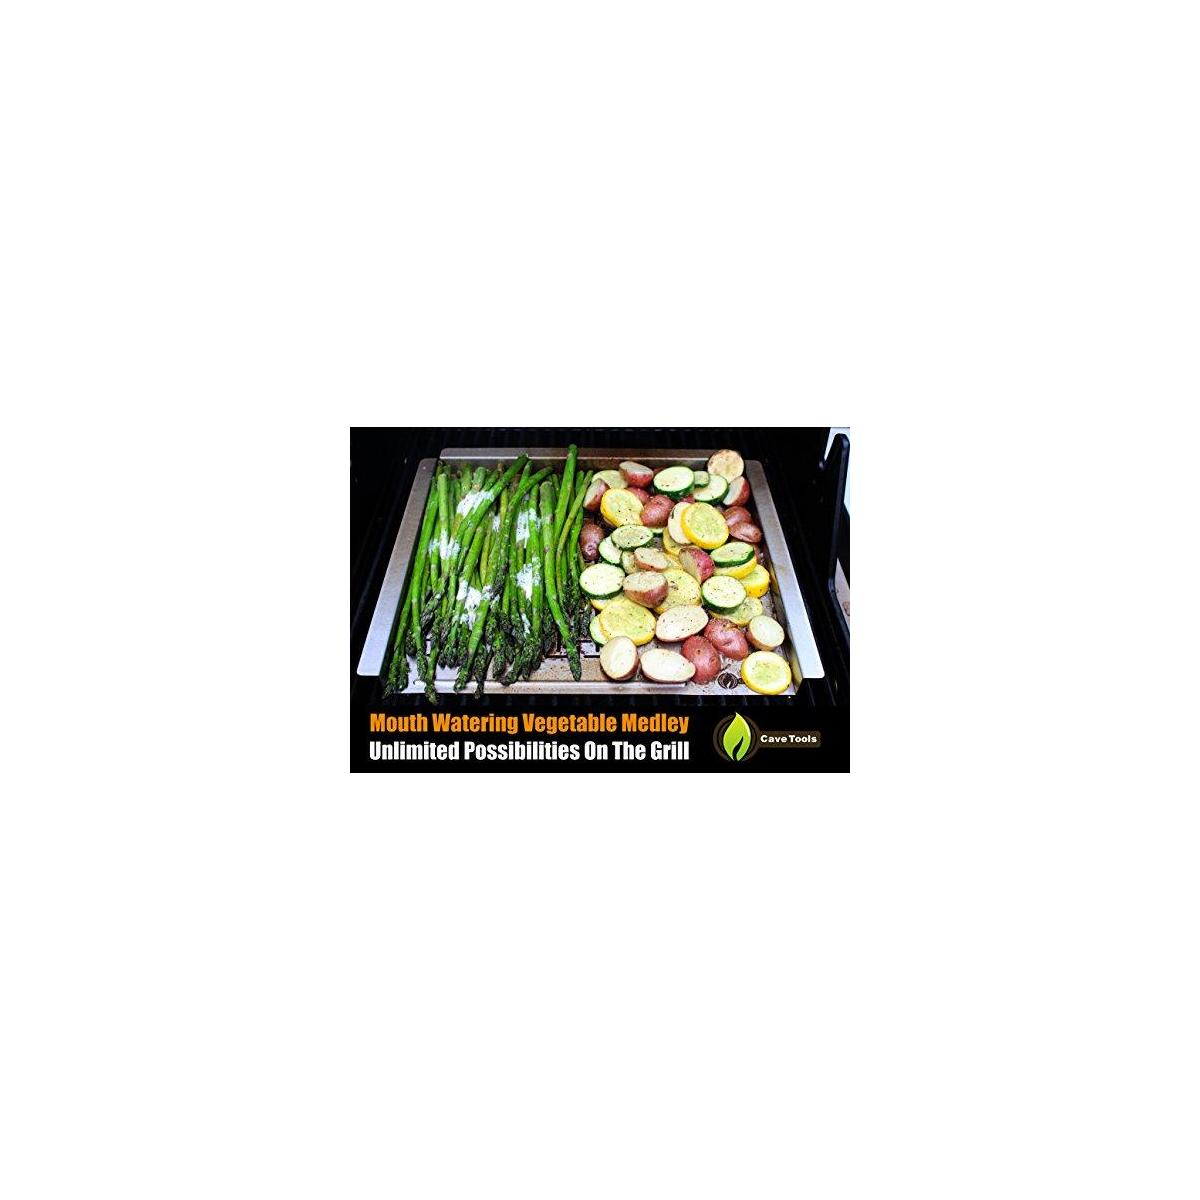 Cave Tools BBQ Grill Pan Mat - Stainless Steel Grilling Tray Grid for Cooking Meat & Griddle Side for Barbecue Breakfast or Vegetables - Topper Basket Accessories for Gas Charcoal Oven or Smokers